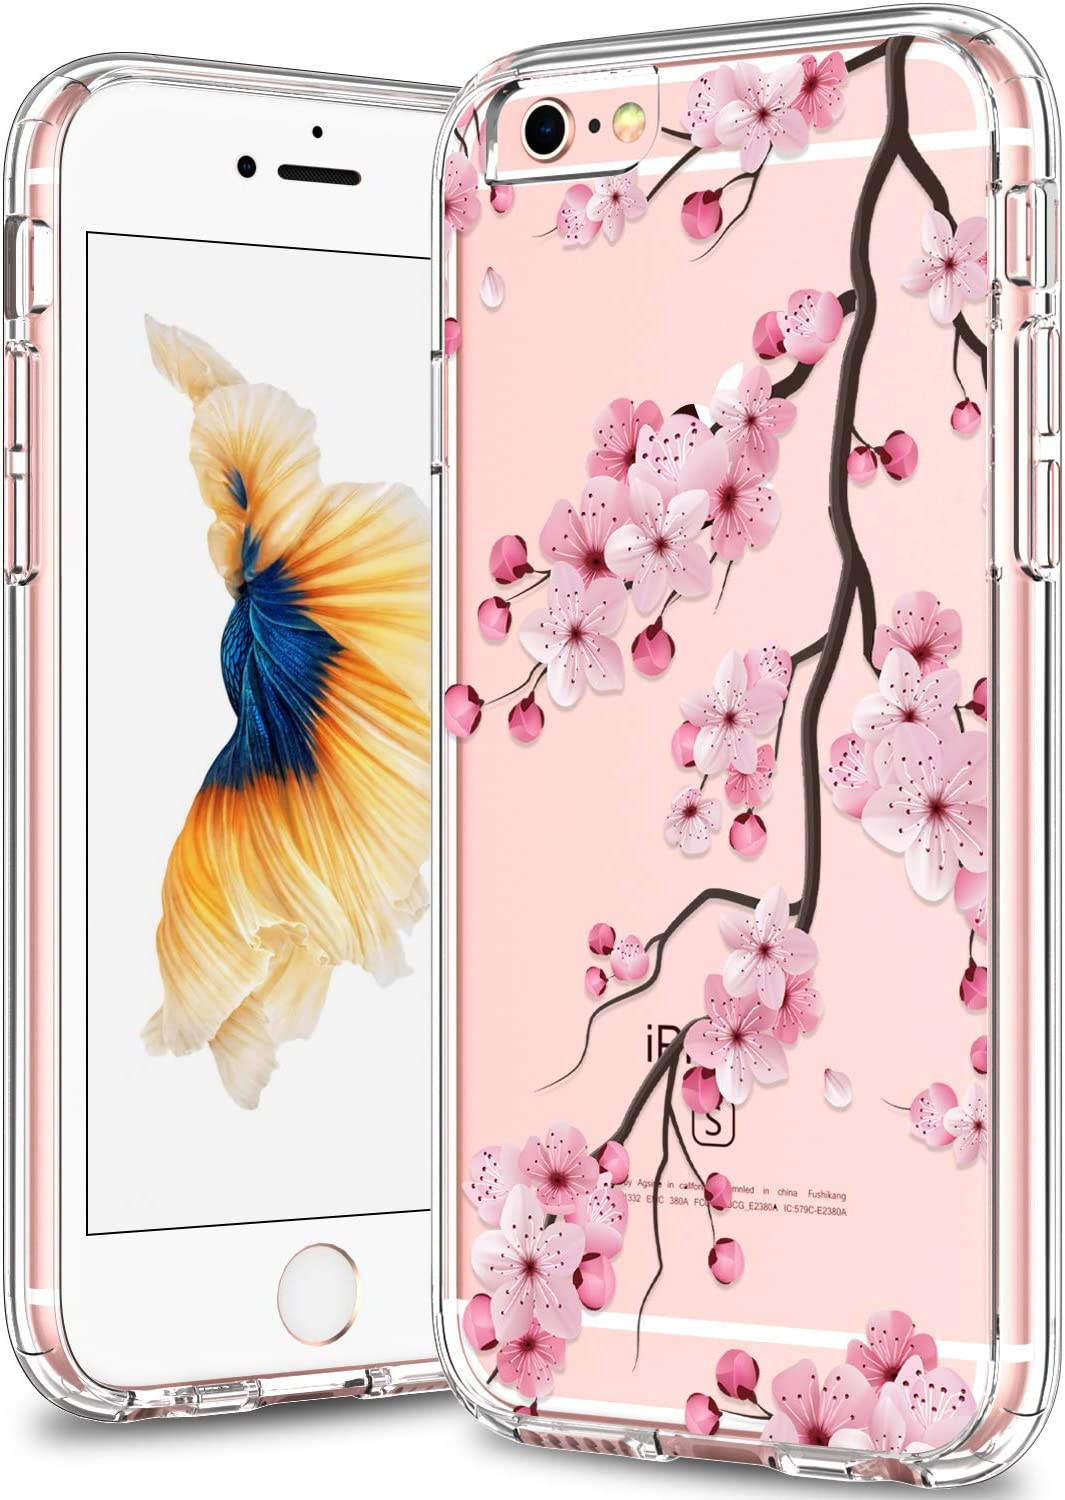 BICOL iPhone 6 Case,iPhone 6s Case,Pink Cherry Blossom FloralClear with Design Plastic Hard Back Case with Soft TPU Bumper Protective Cover Phone Case for Apple iPhone 6/iPhone 6s-29